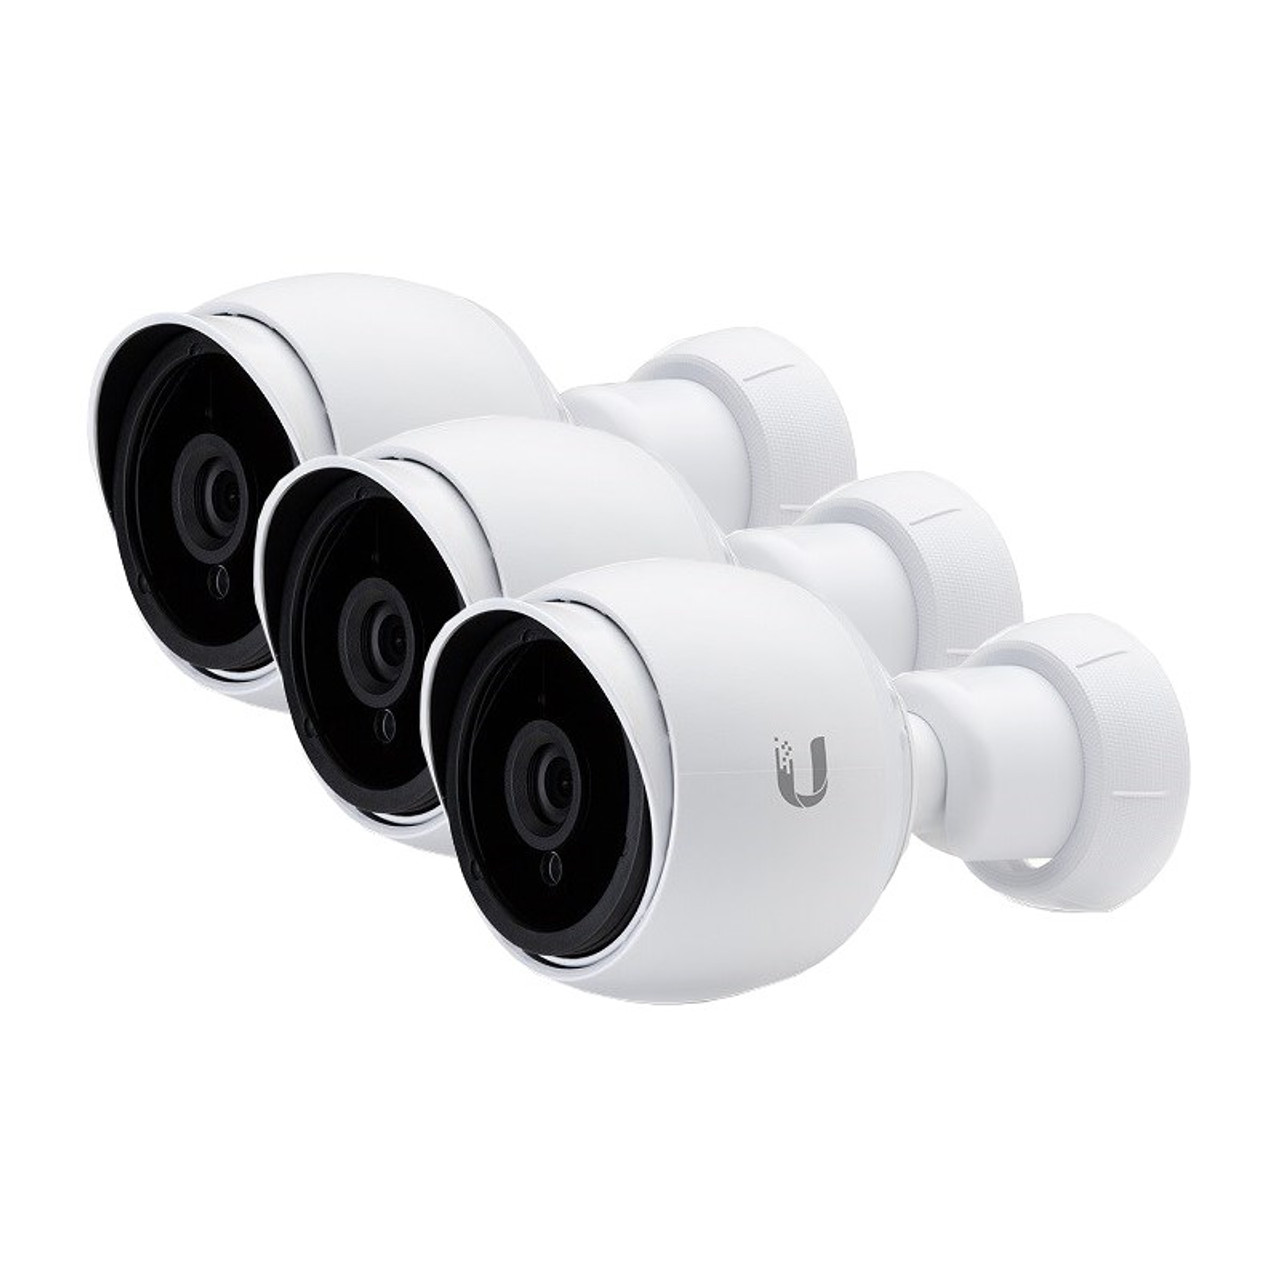 Image for Ubiquiti Networks UniFi UVC-G3-BULLET-3 FHD IP Surveillance Camera - 3 Pack CX Computer Superstore